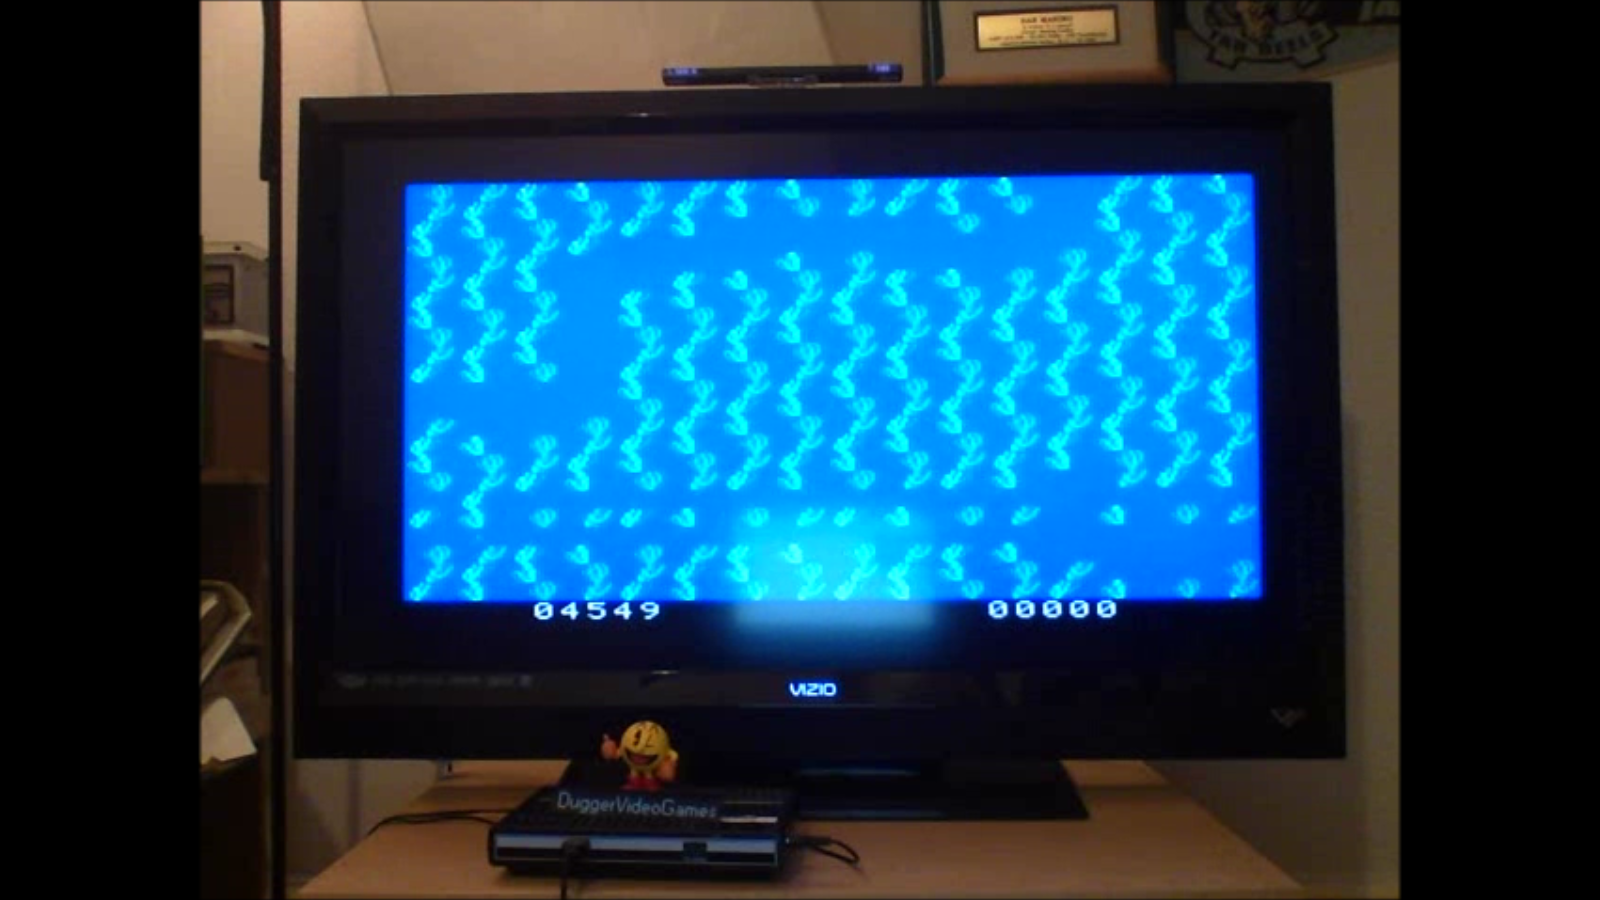 DuggerVideoGames: Fathom (Colecovision Emulated) 4,549 points on 2016-07-12 22:51:43